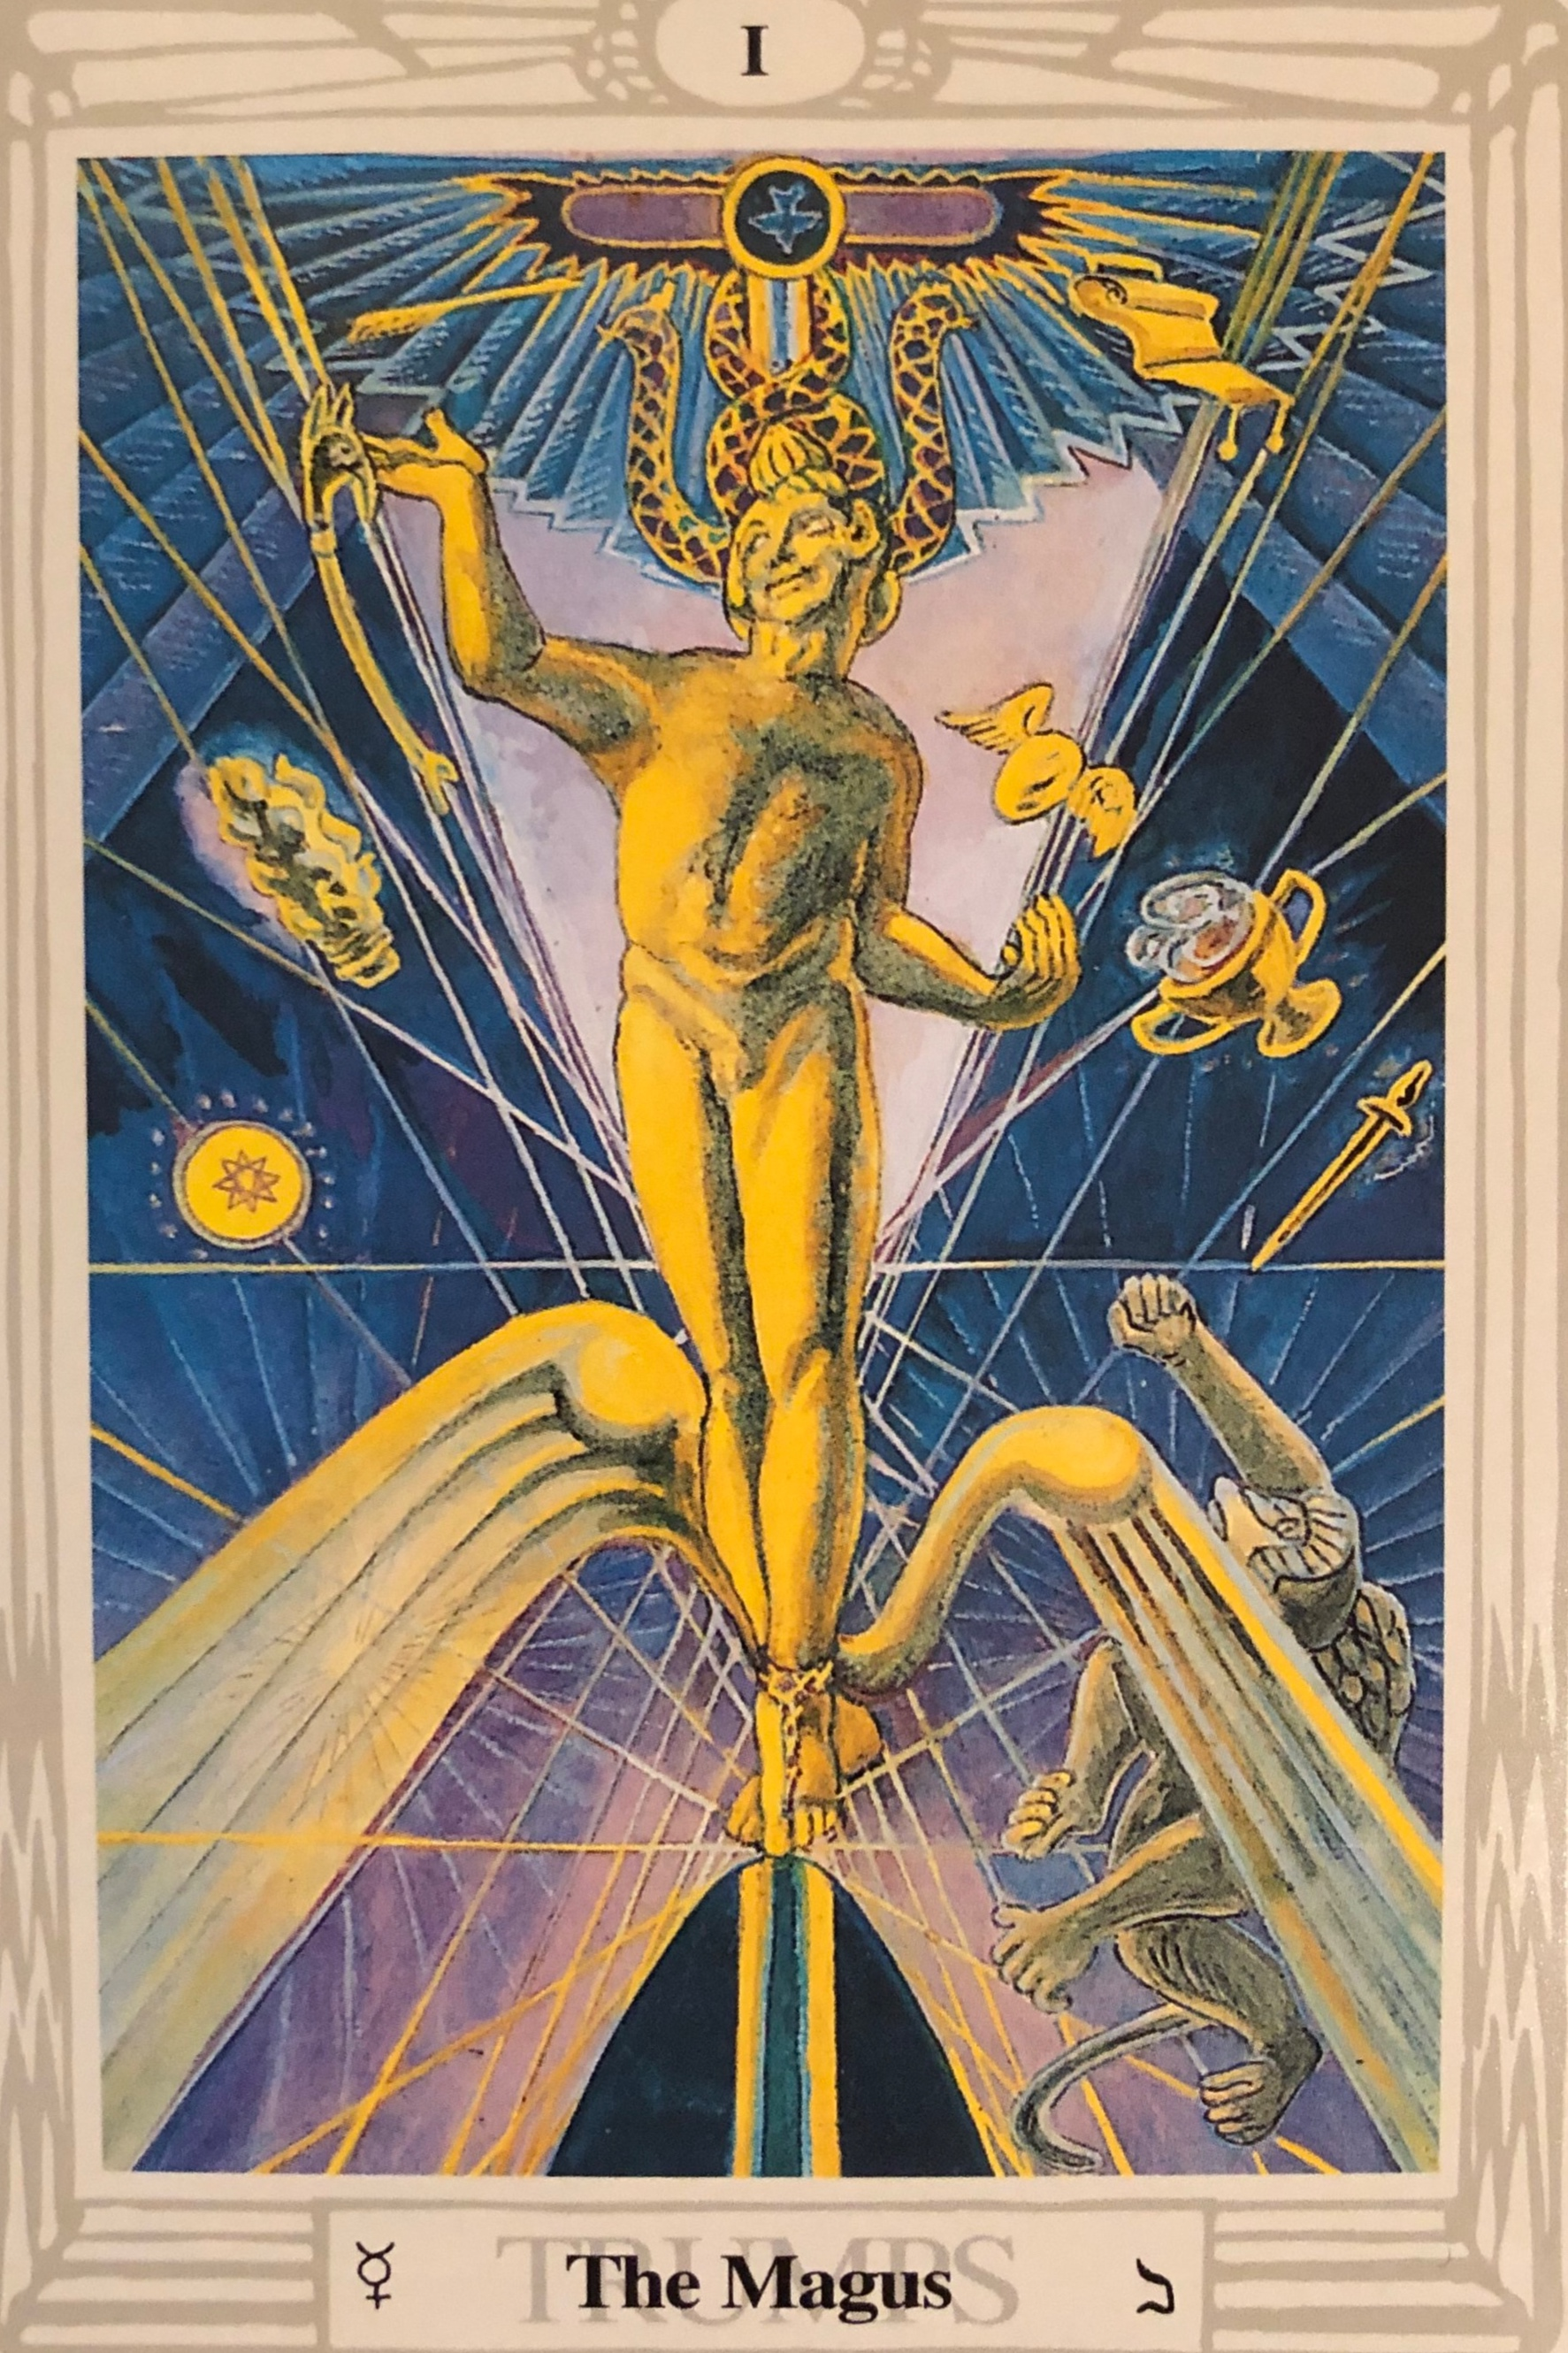 "The Magus - Mercury, Flexibility, Communication, New Beginnings, and Balance""The Magus is represented but the Greek God Mercury, the messenger with wings of pure spirit. Mercury bears energy which spreads and radiates from him. This card represents Will, Wisdom and the Word through which the world was created."